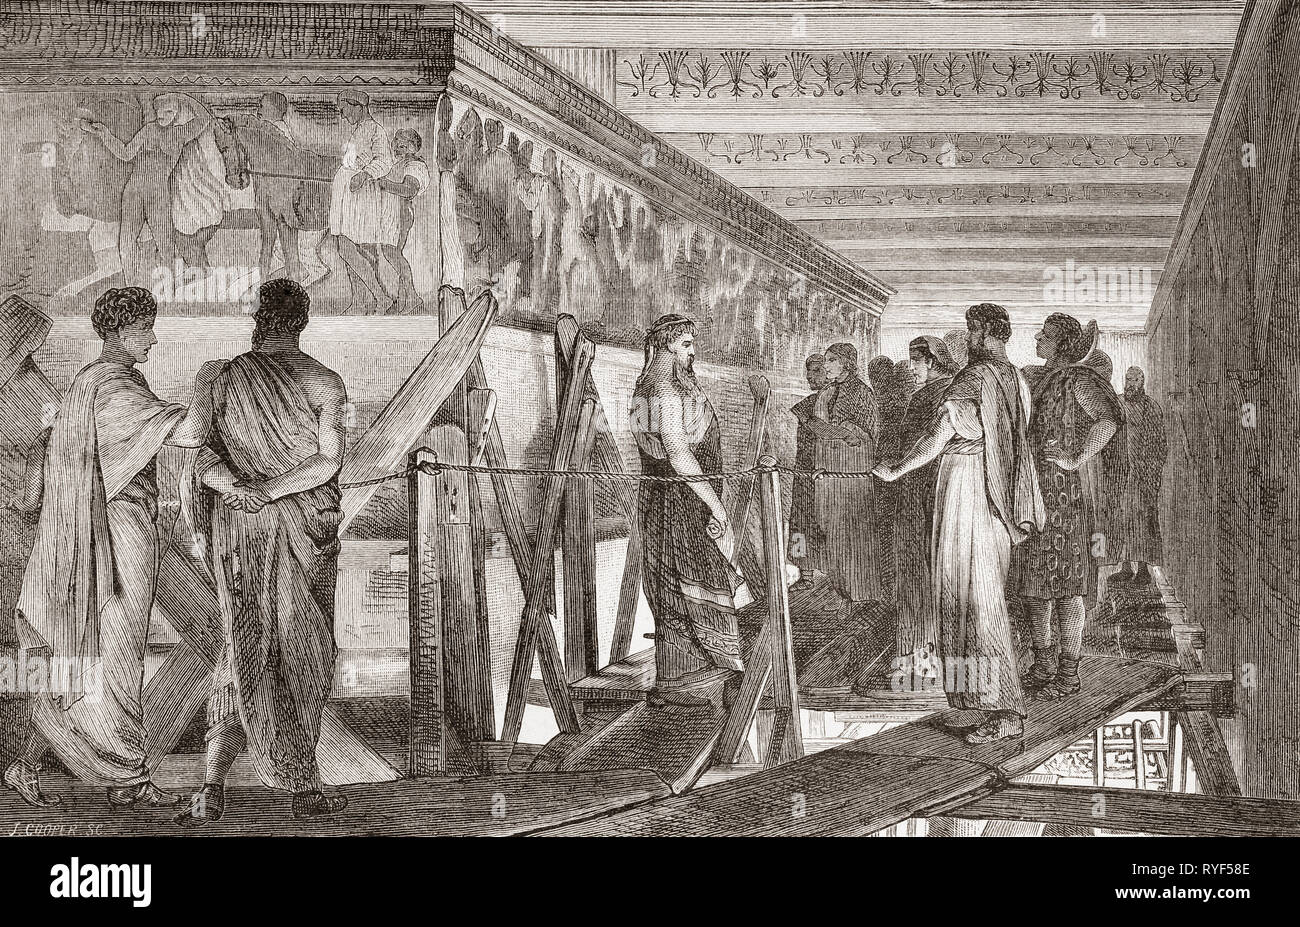 Phidias showing the frieze of the Parthenon to his friends, after the painting by Sir Lawrence Alma-Tadema.   Phidias or Pheidias, c. 480 – 430 BC.  Greek sculptor, painter, and architect.  From Ilustracion Artistica, published 1887. - Stock Image